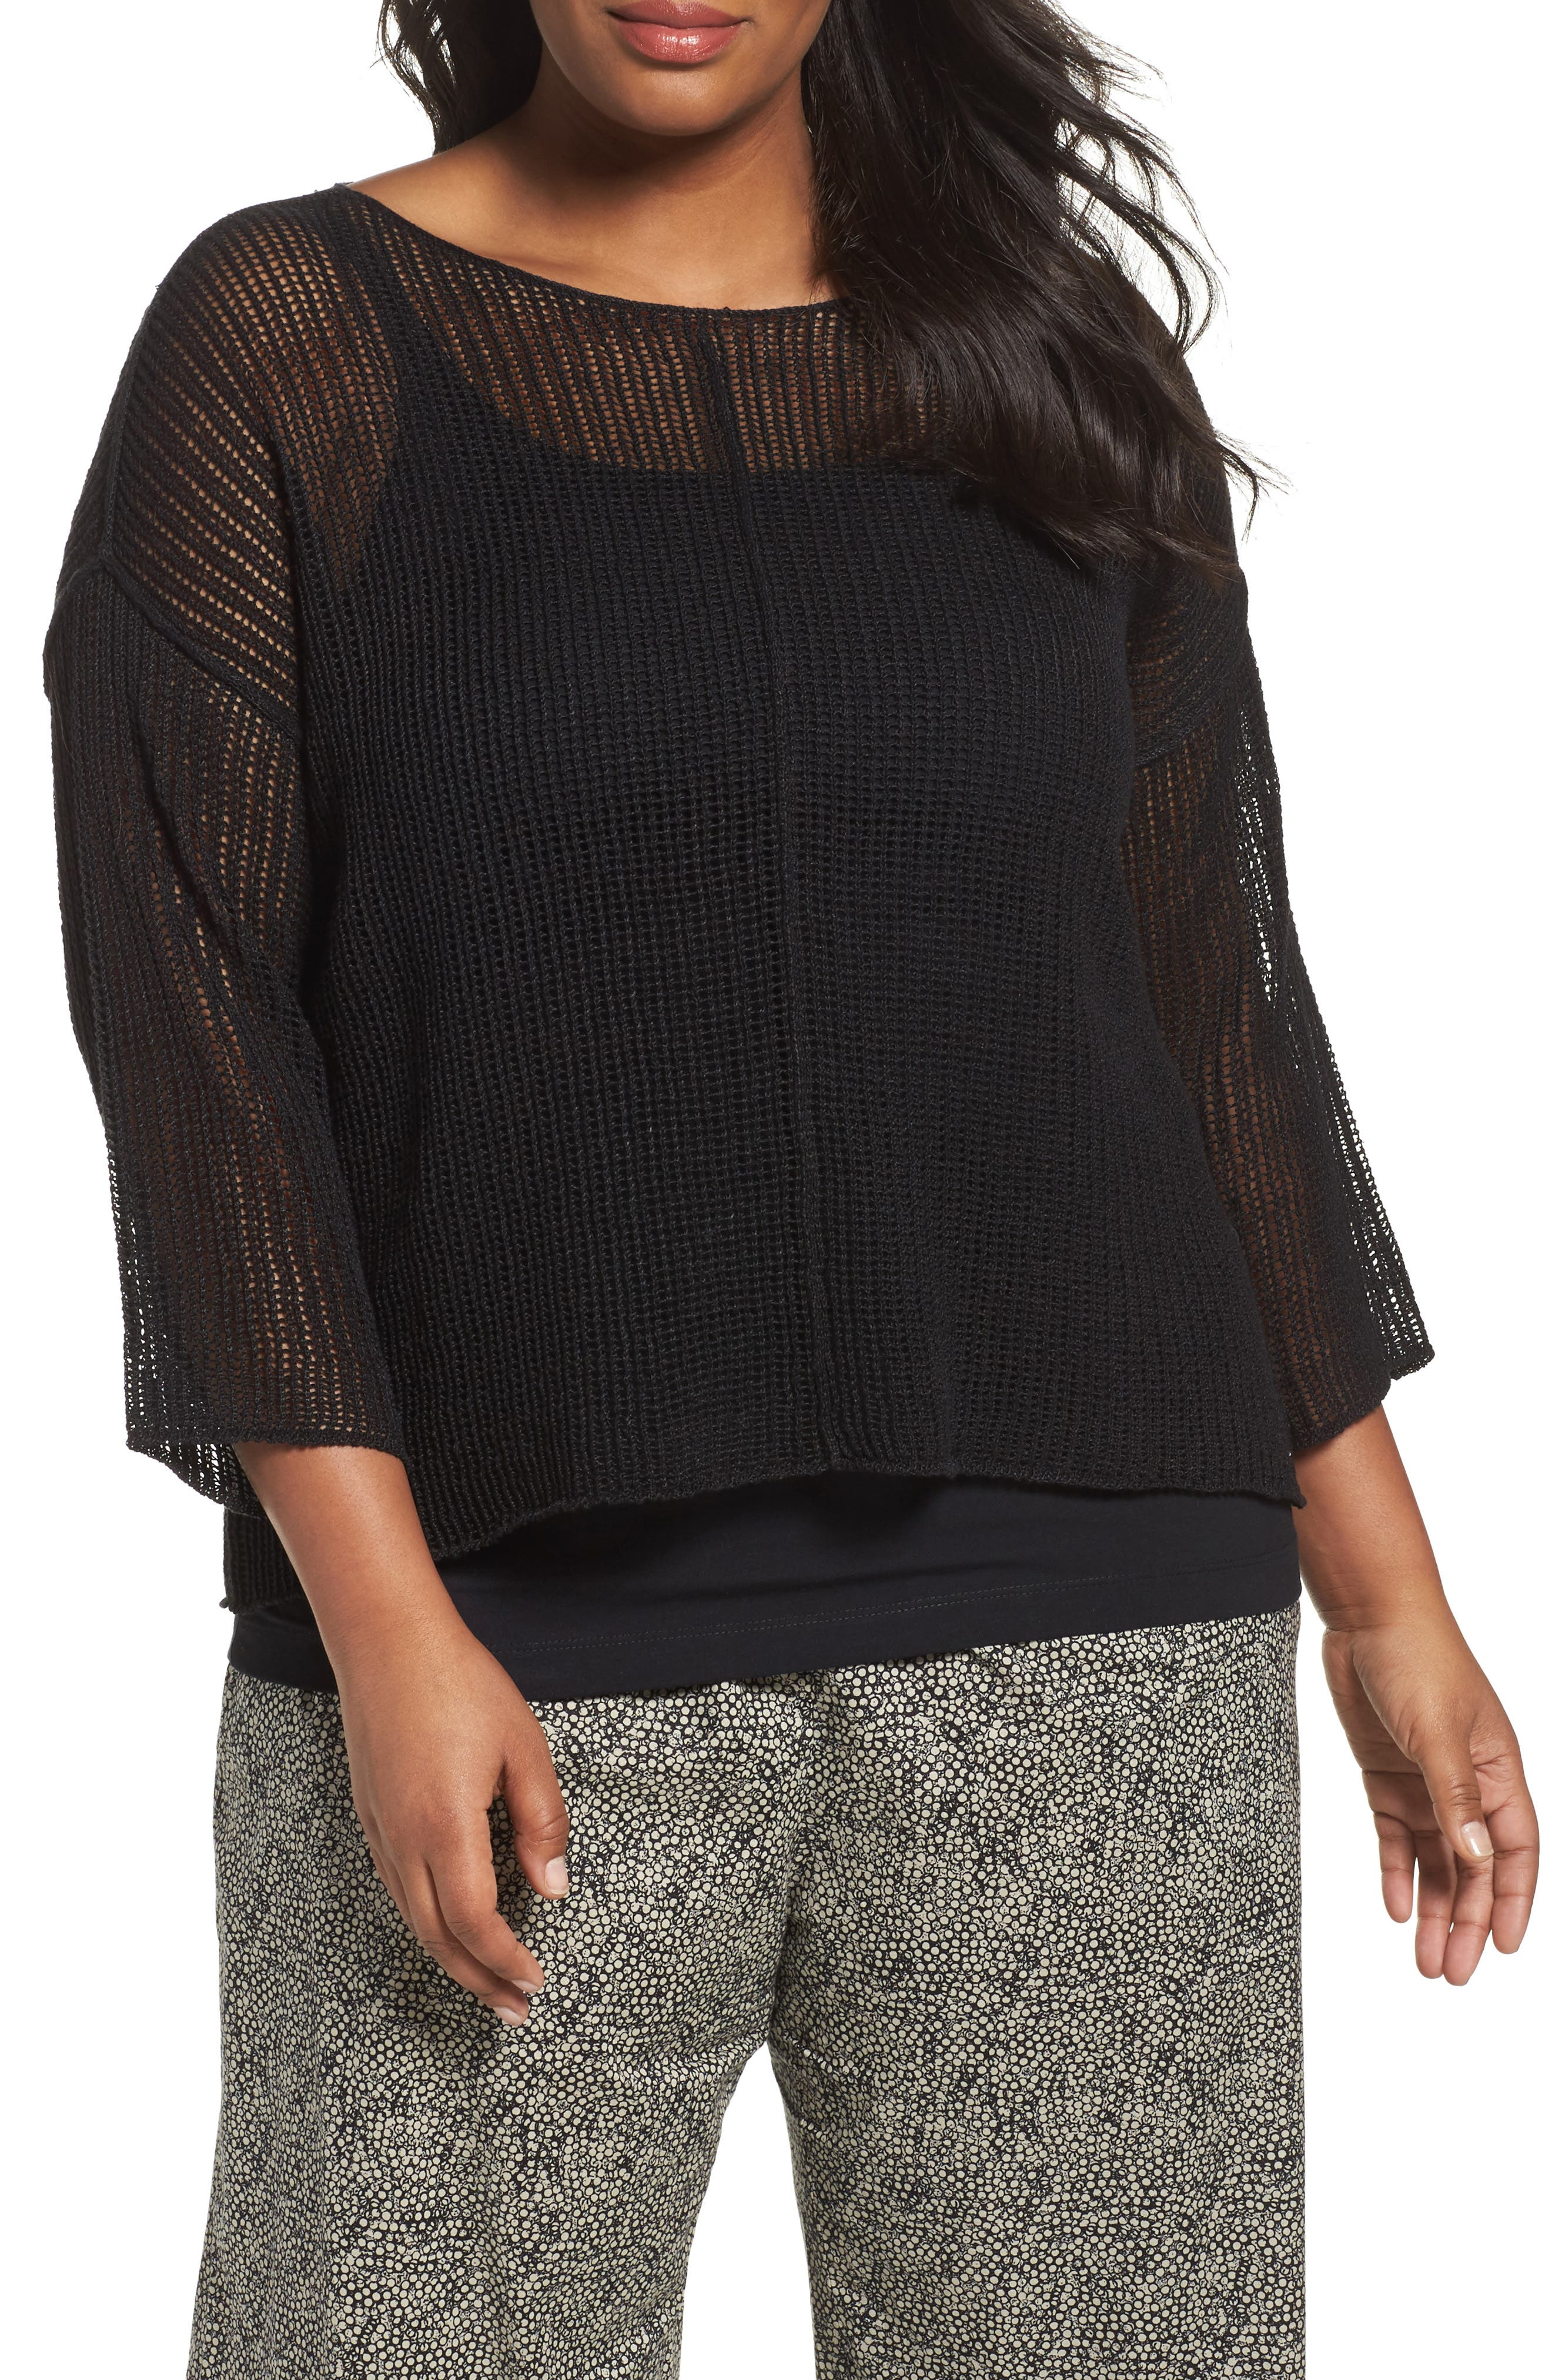 Alternate Image 1 Selected - Eileen Fisher Organic Linen Mesh Knit Top (Plus Size)